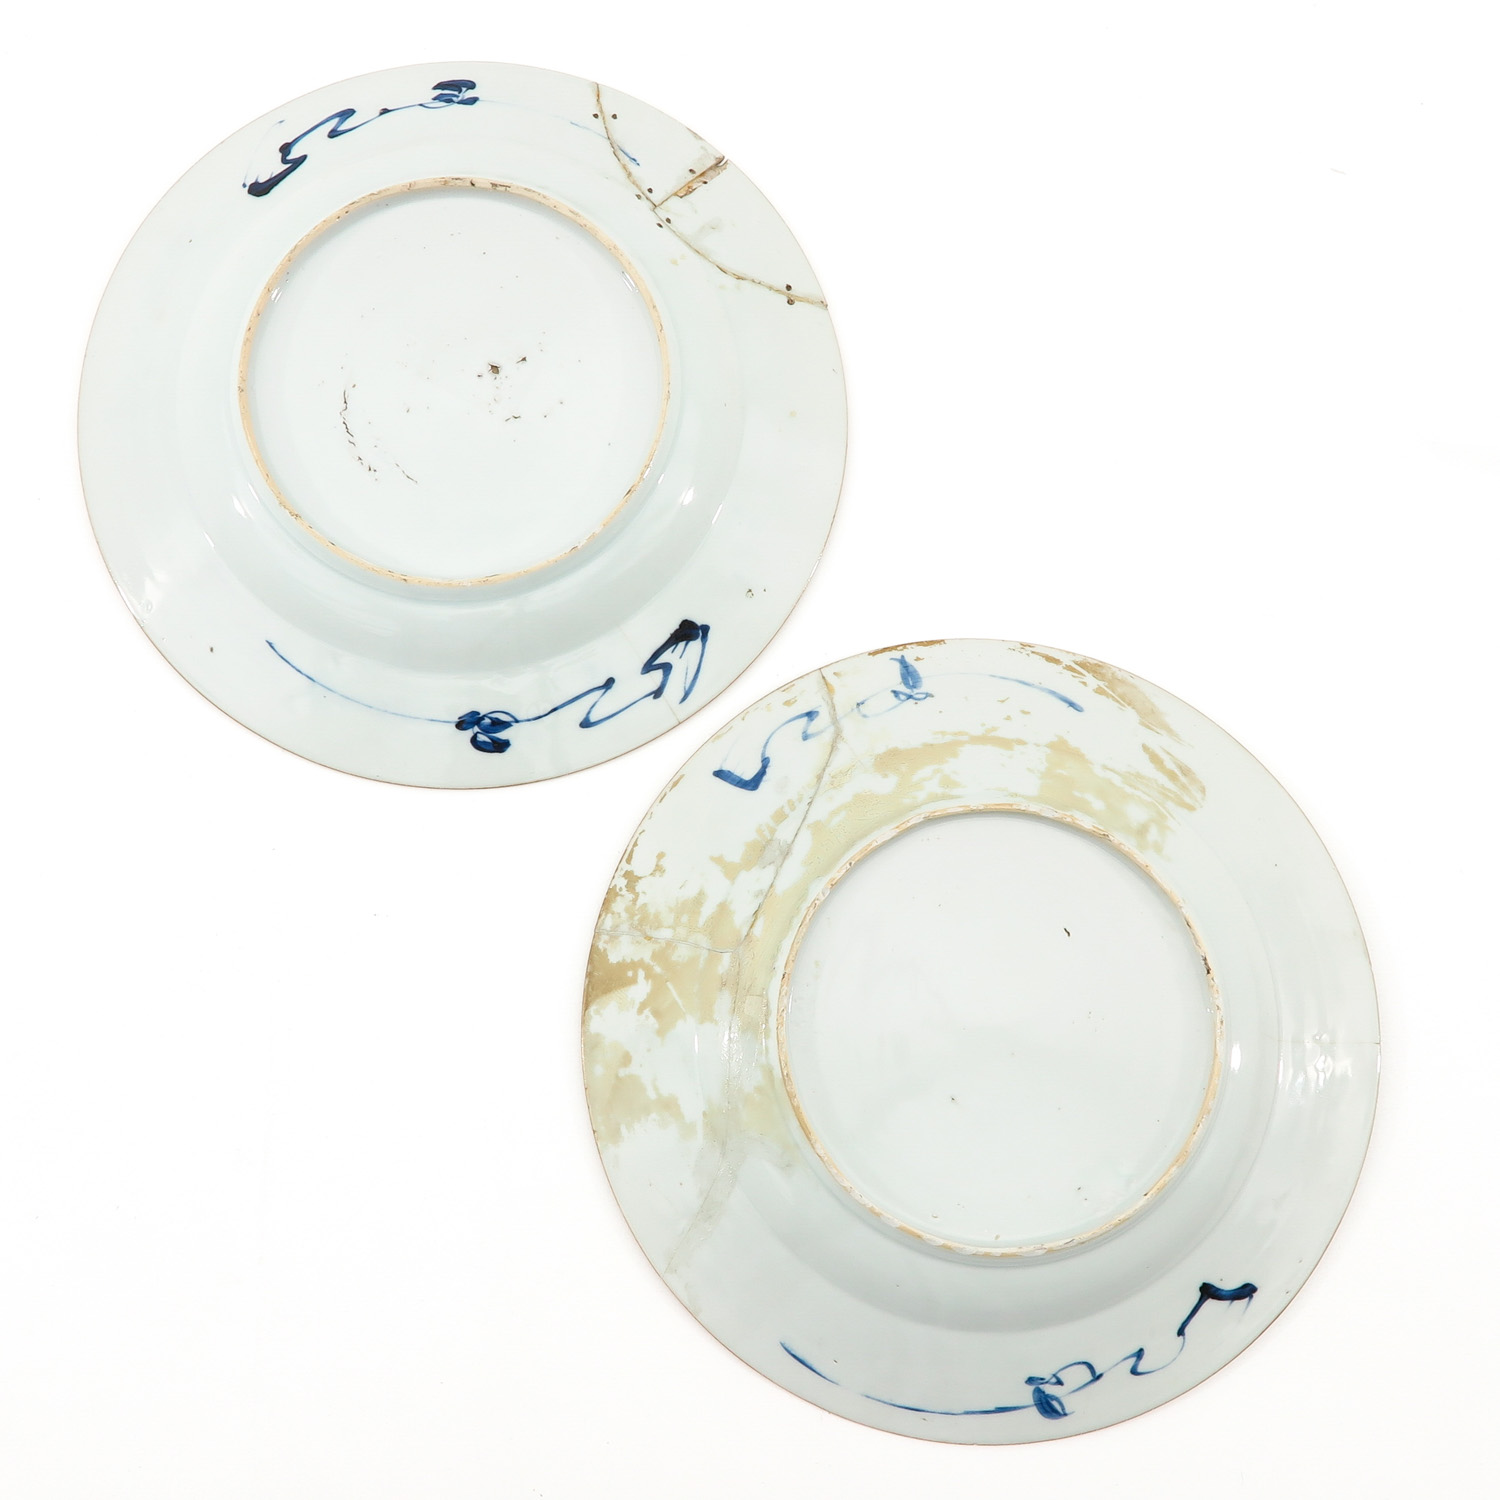 A Pair of Blue and White Plates - Image 2 of 10